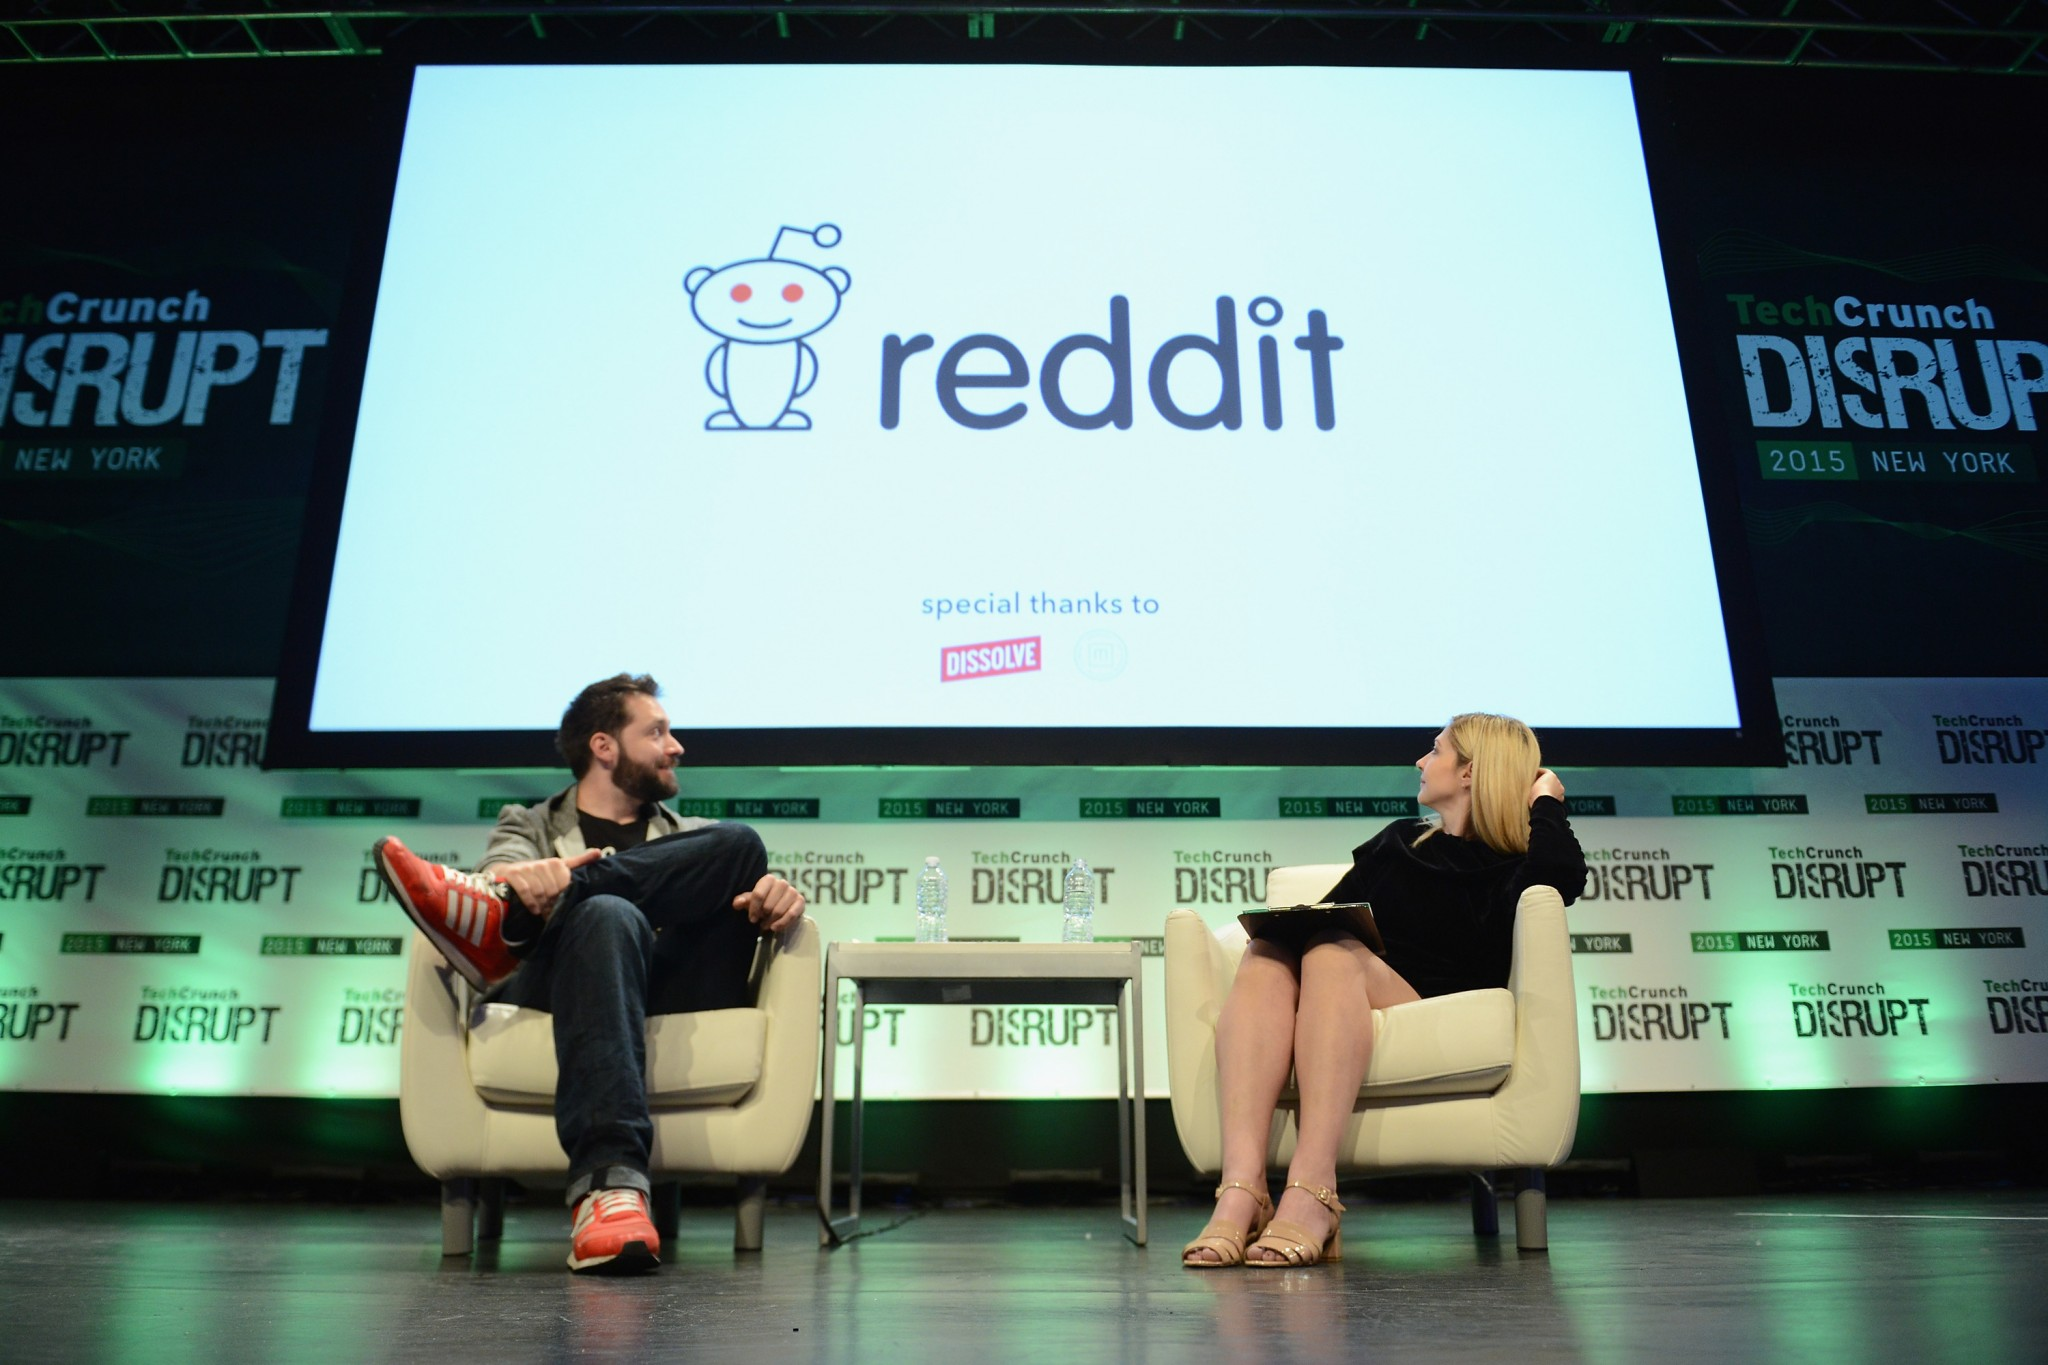 Reddit co-founder Alexis Ohanian on-stage at TechCrunch Disrupt NY 2015.